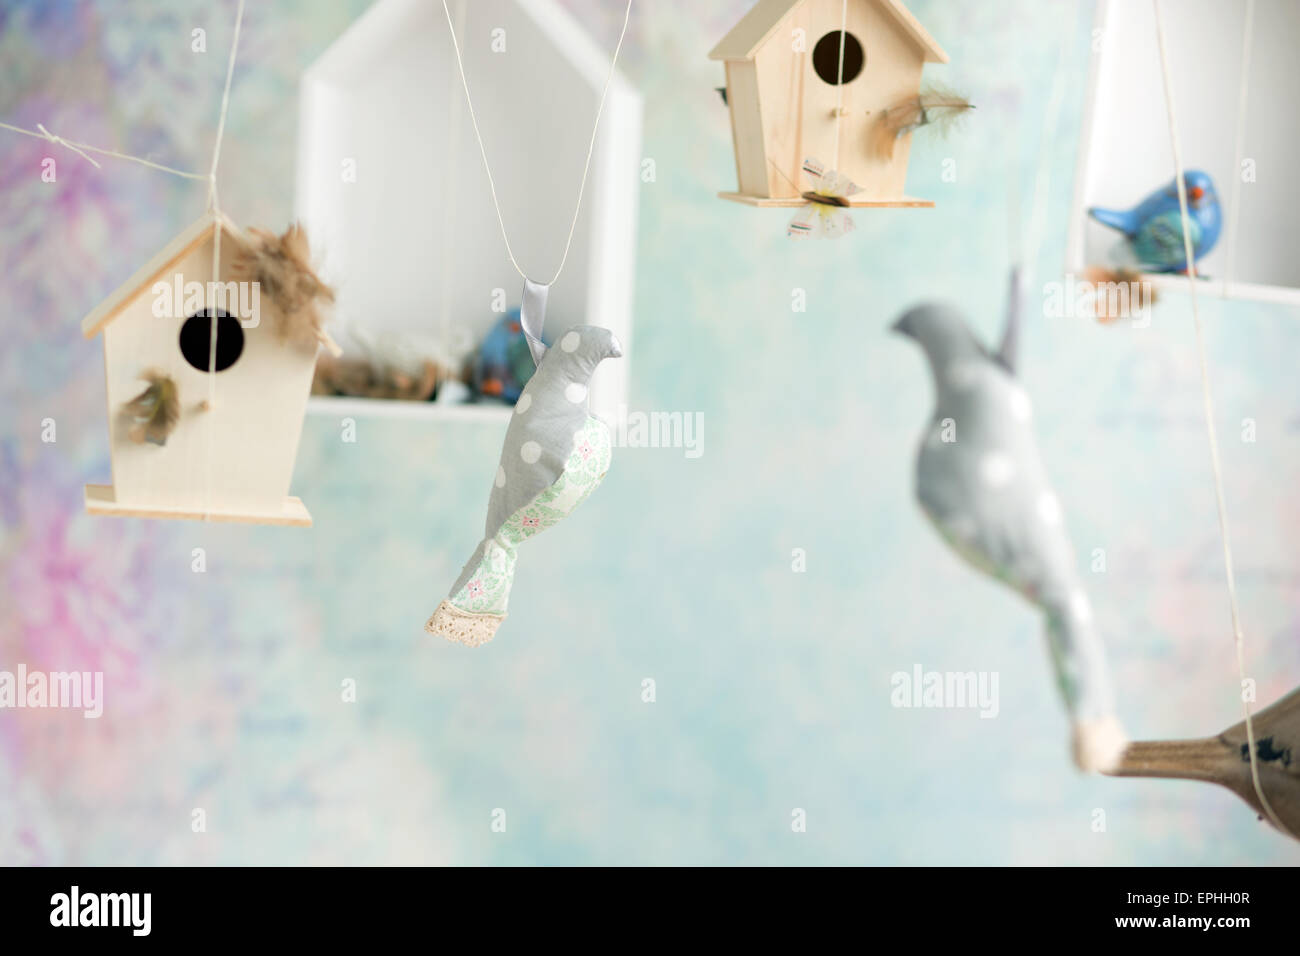 Vintage background with wooden birds - Stock Image